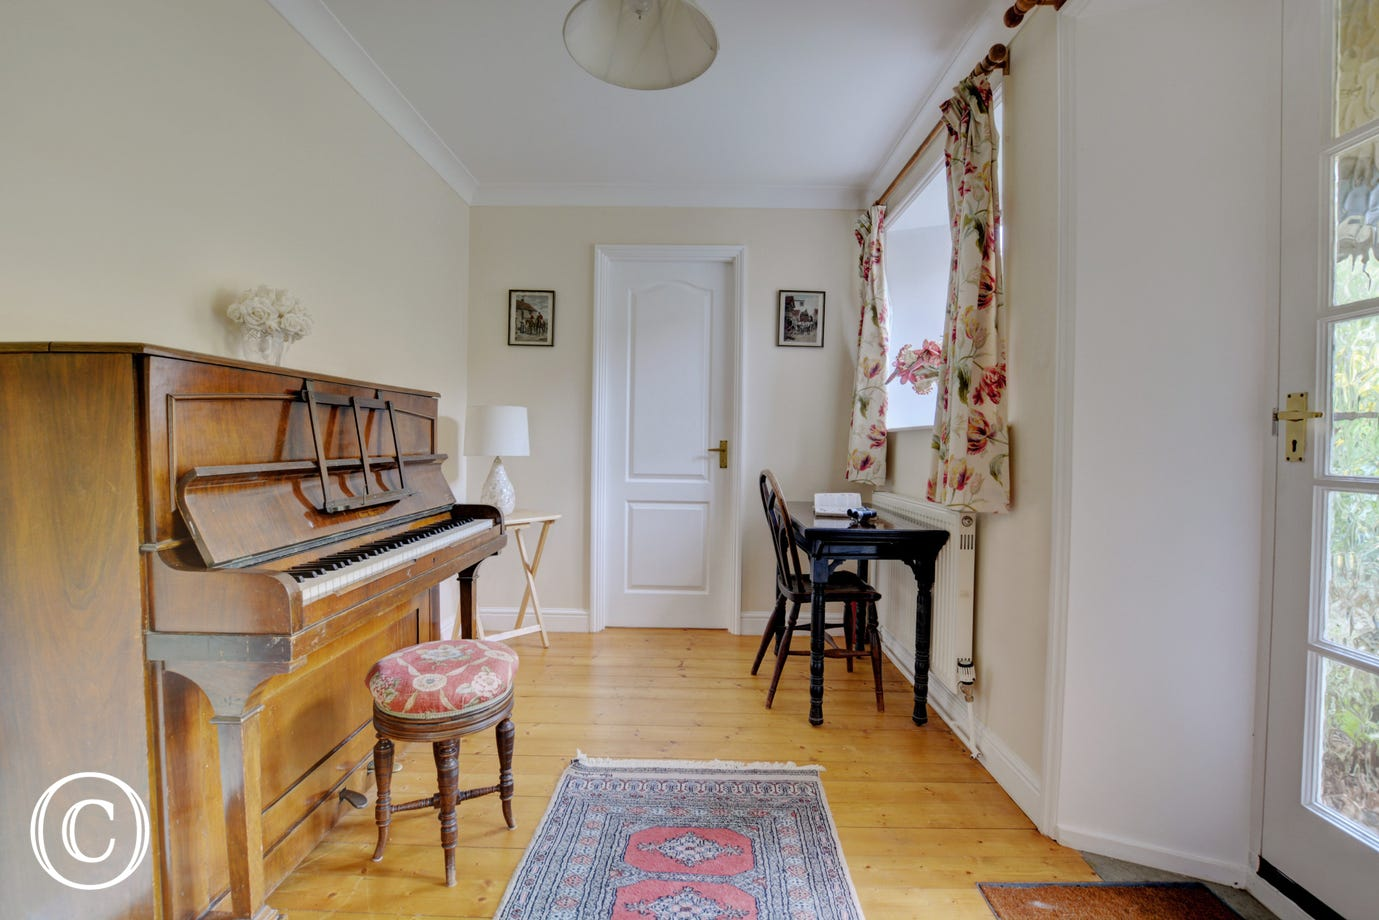 Music room with upright piano.